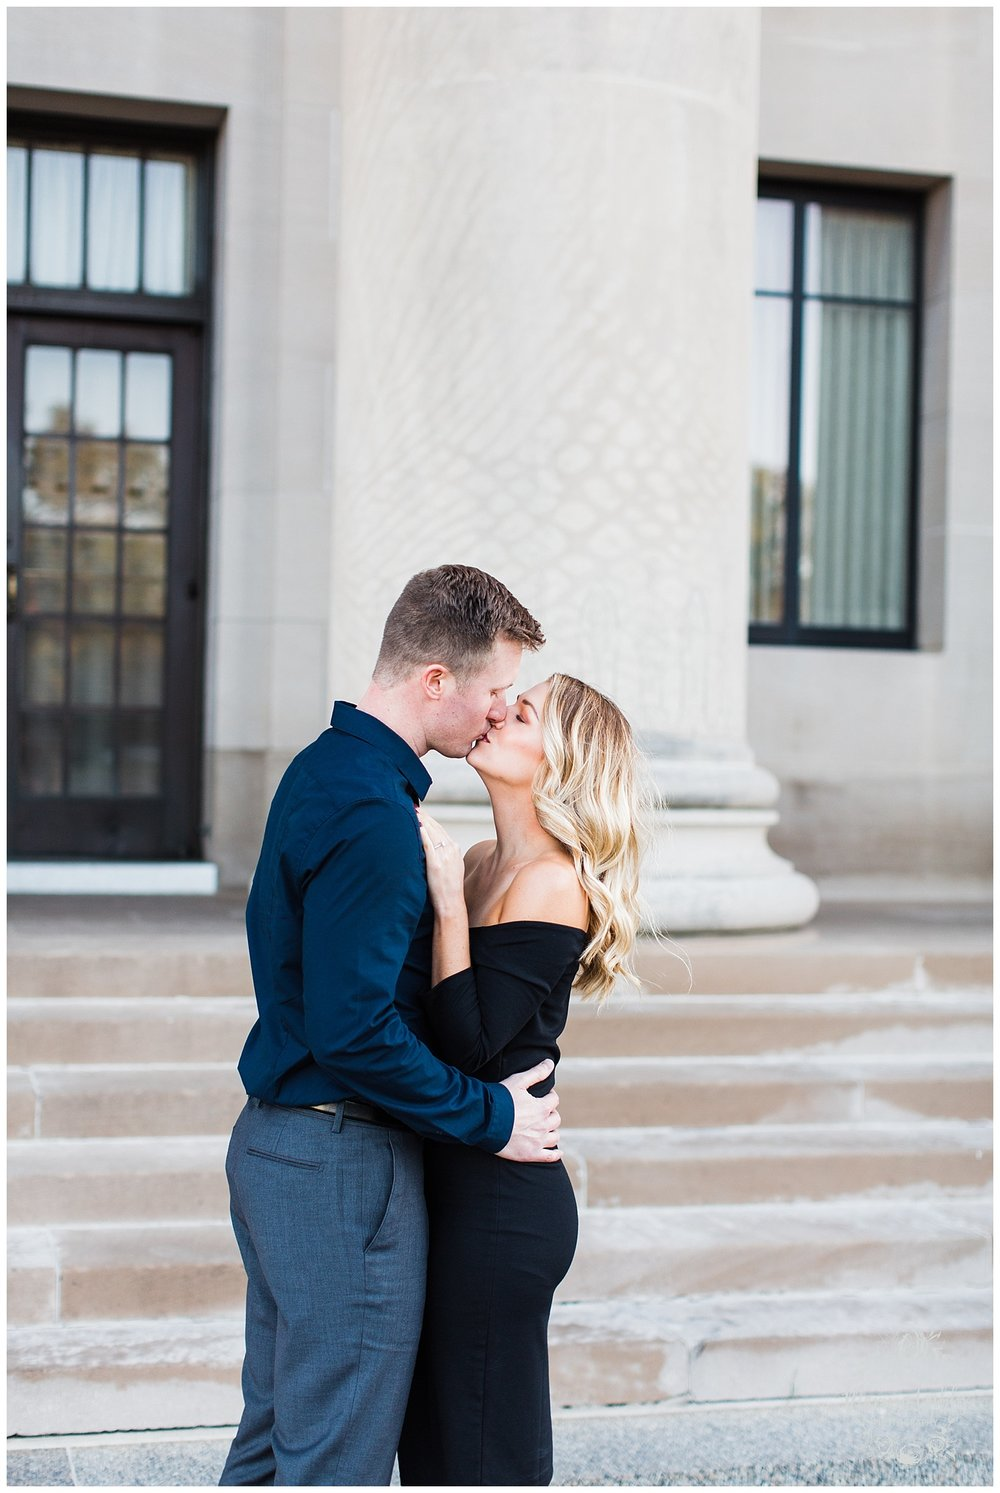 KATE & NATE ENGAGEMENT | NELSON ATKINS | MARISSA CRIBBS PHOTOGRAPHY_3577.jpg